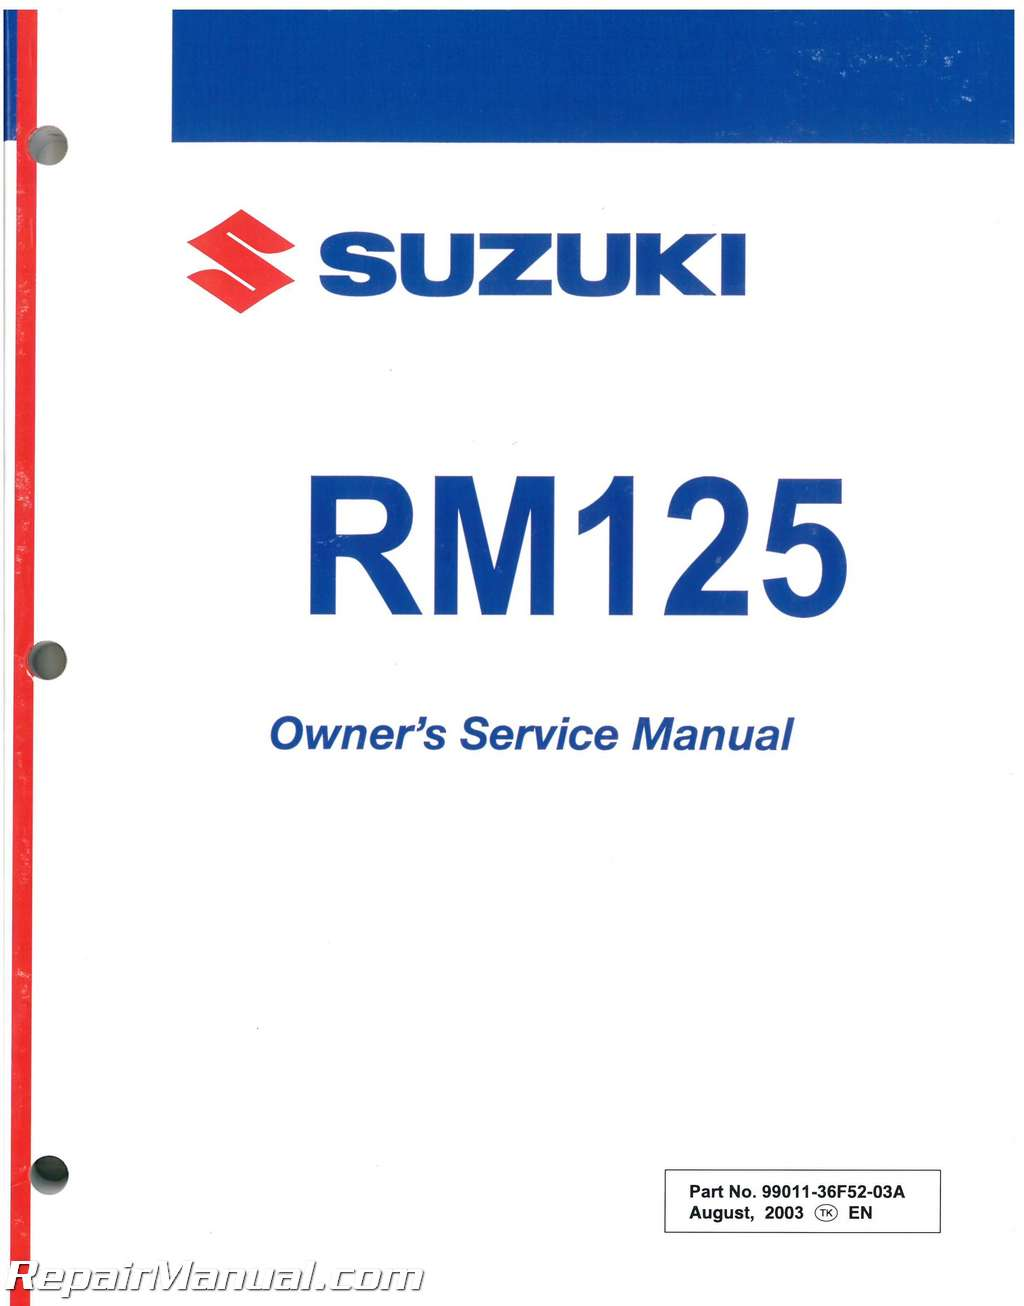 2003 suzuki rm125k3 motorcycle service manual owners manual rh ebay com suzuki motorcycle owners manual pdf Suzuki Parts Manual